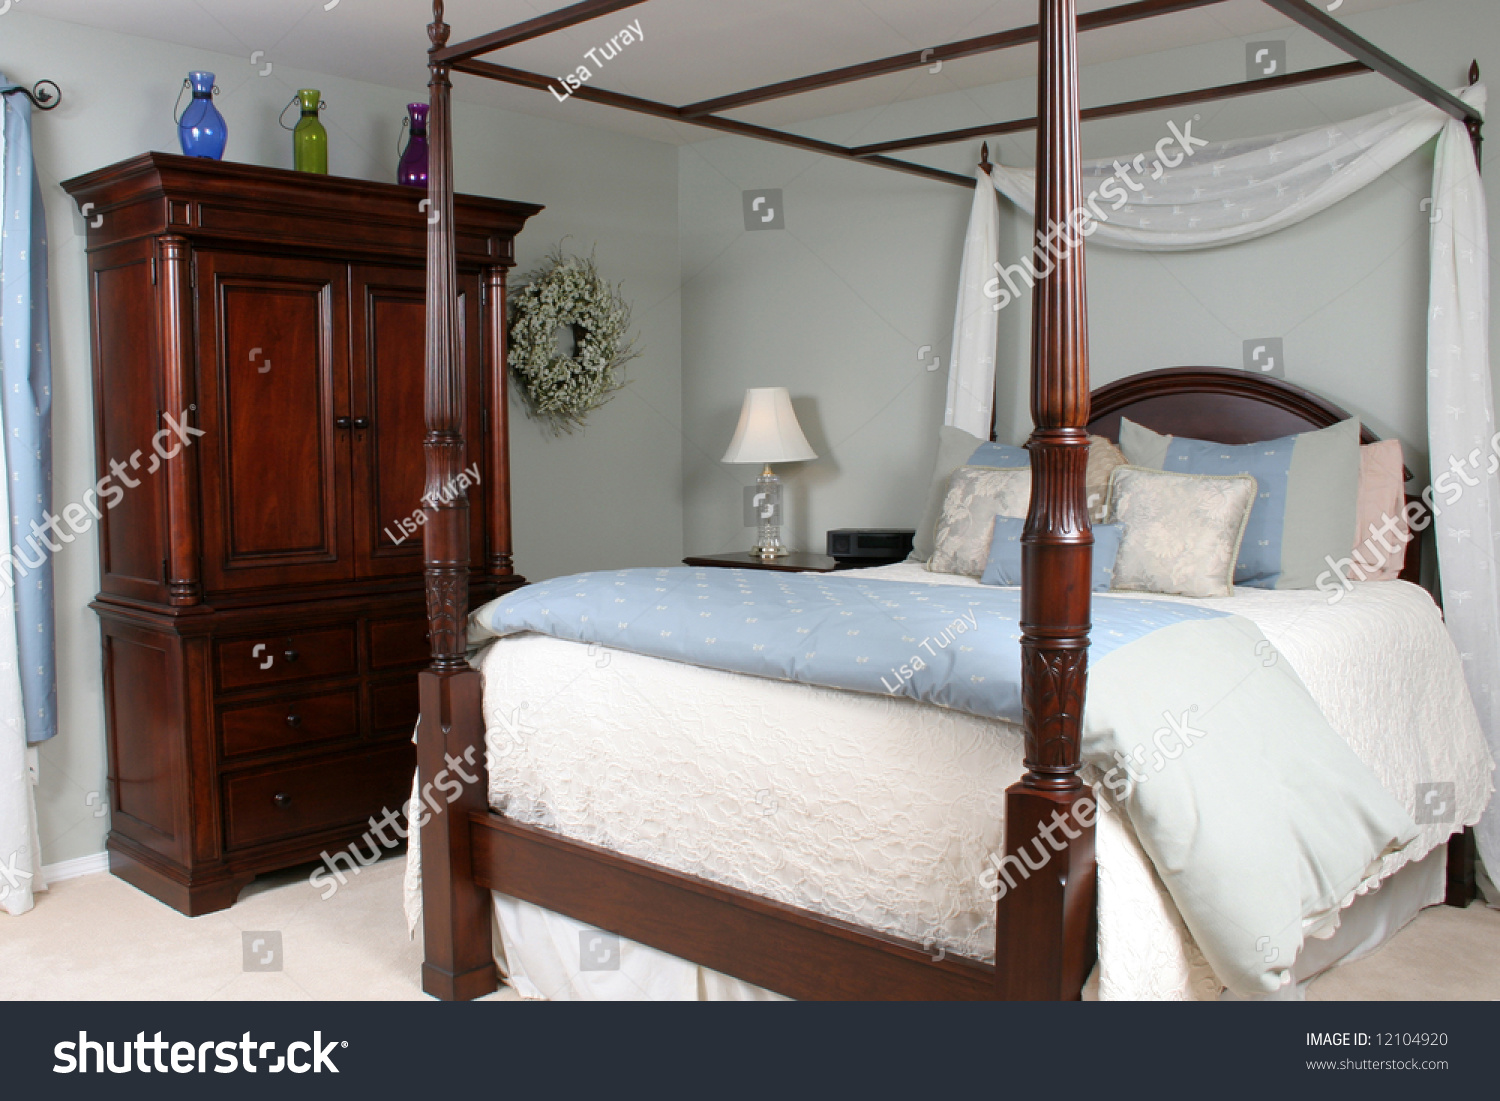 Wood Four Poster Beds Interior Master Bedroom Four Poster Bed Stock Photo